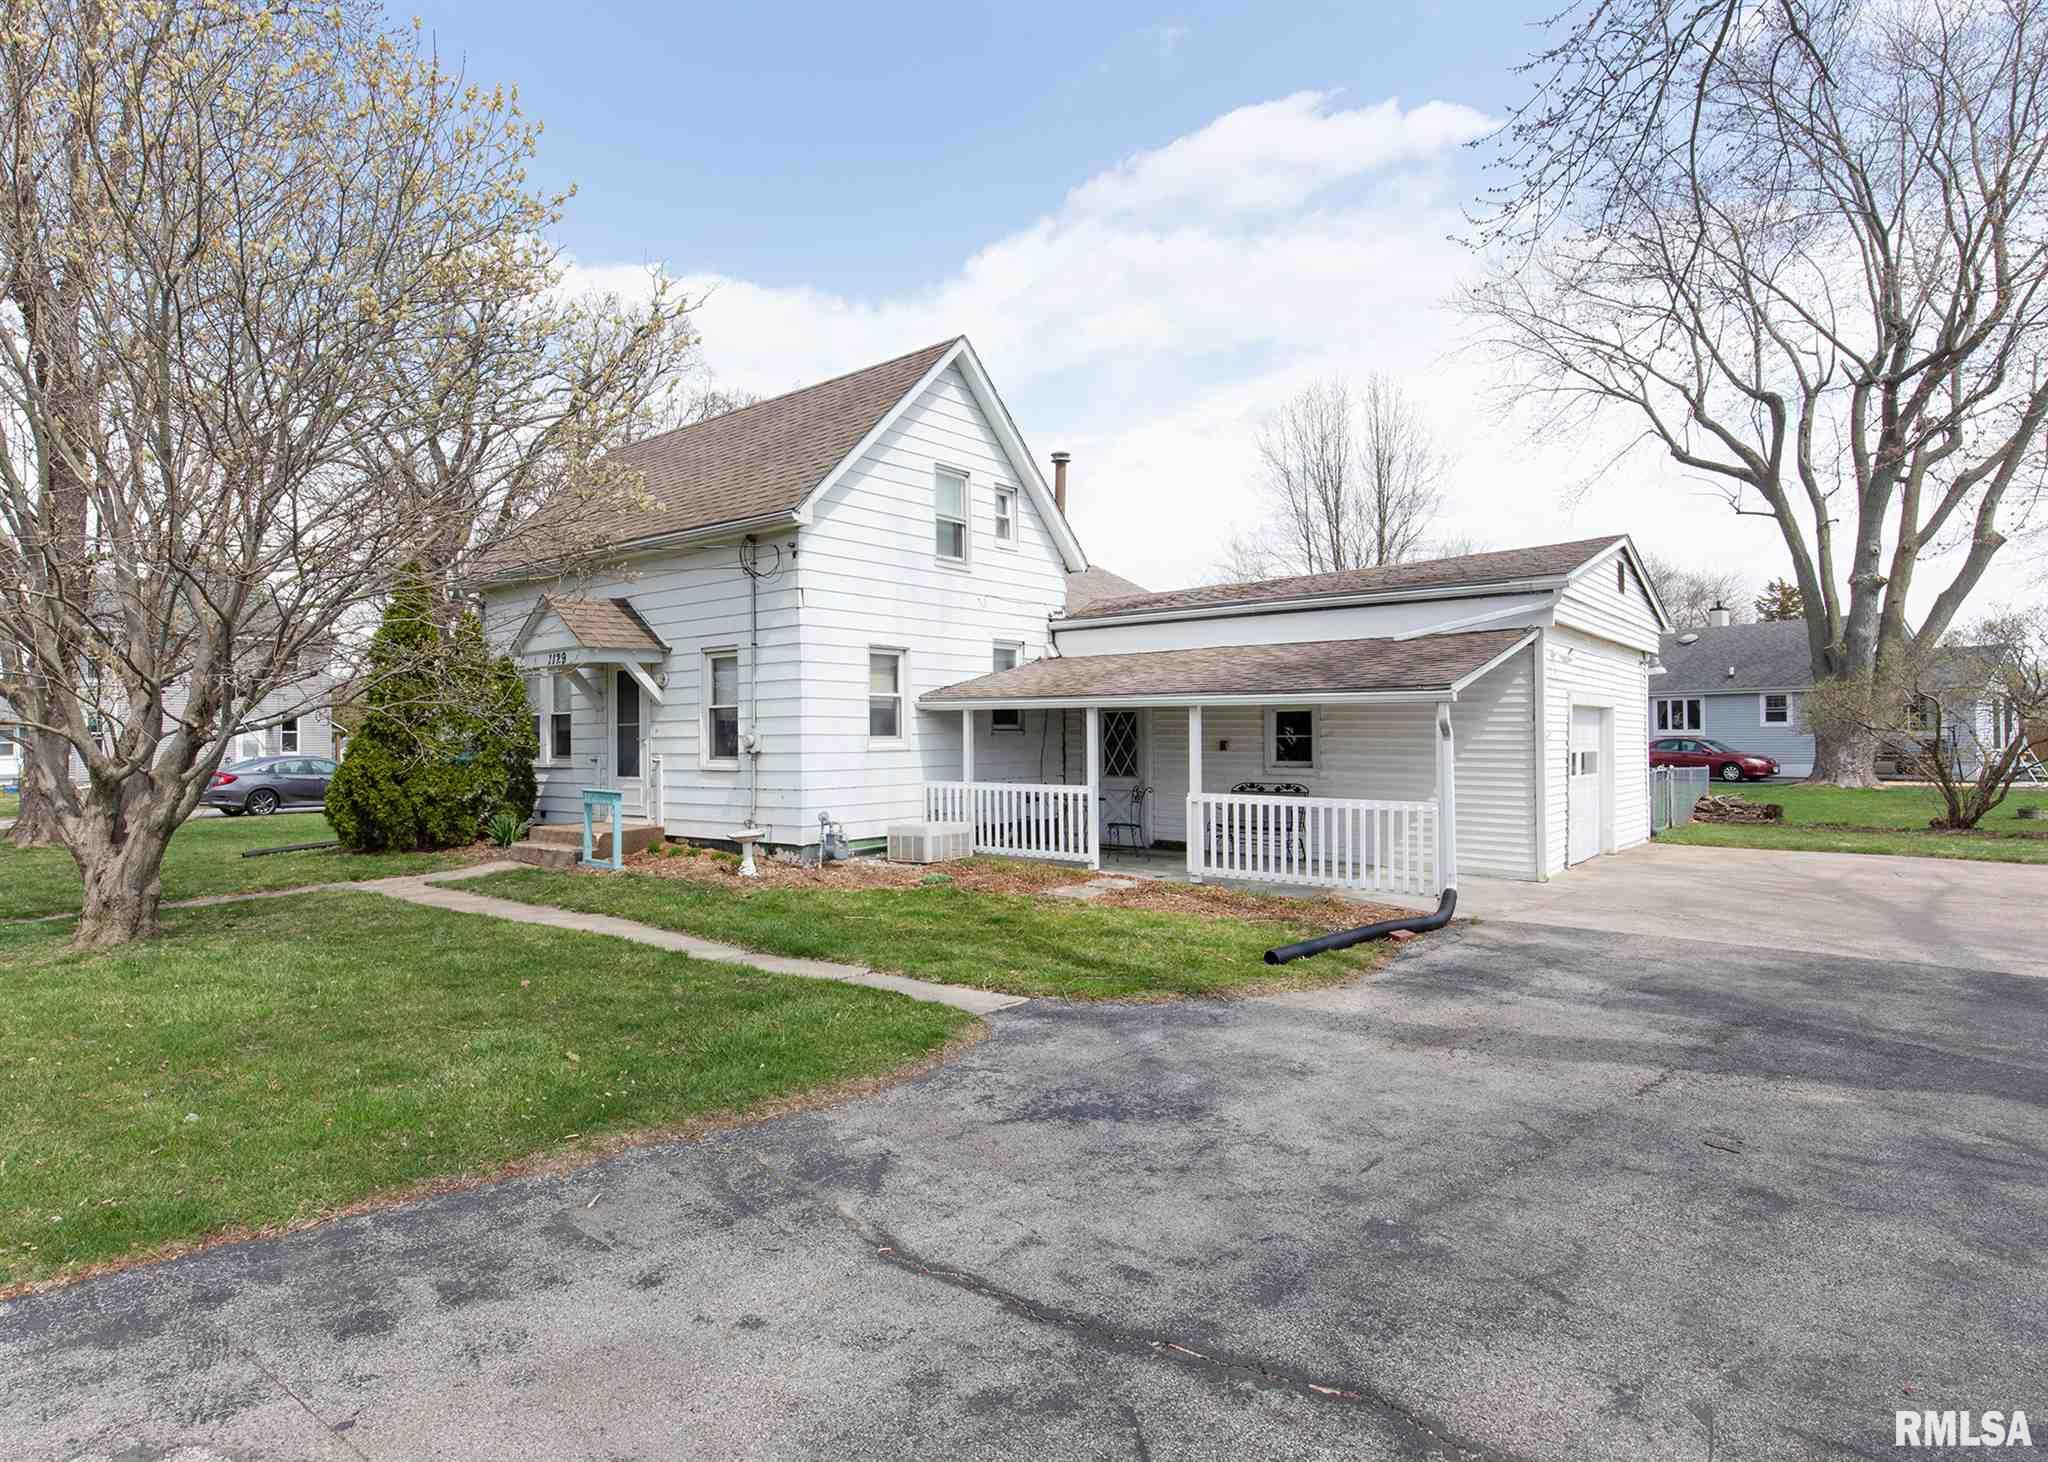 1129 HOSPITAL Property Photo - Silvis, IL real estate listing